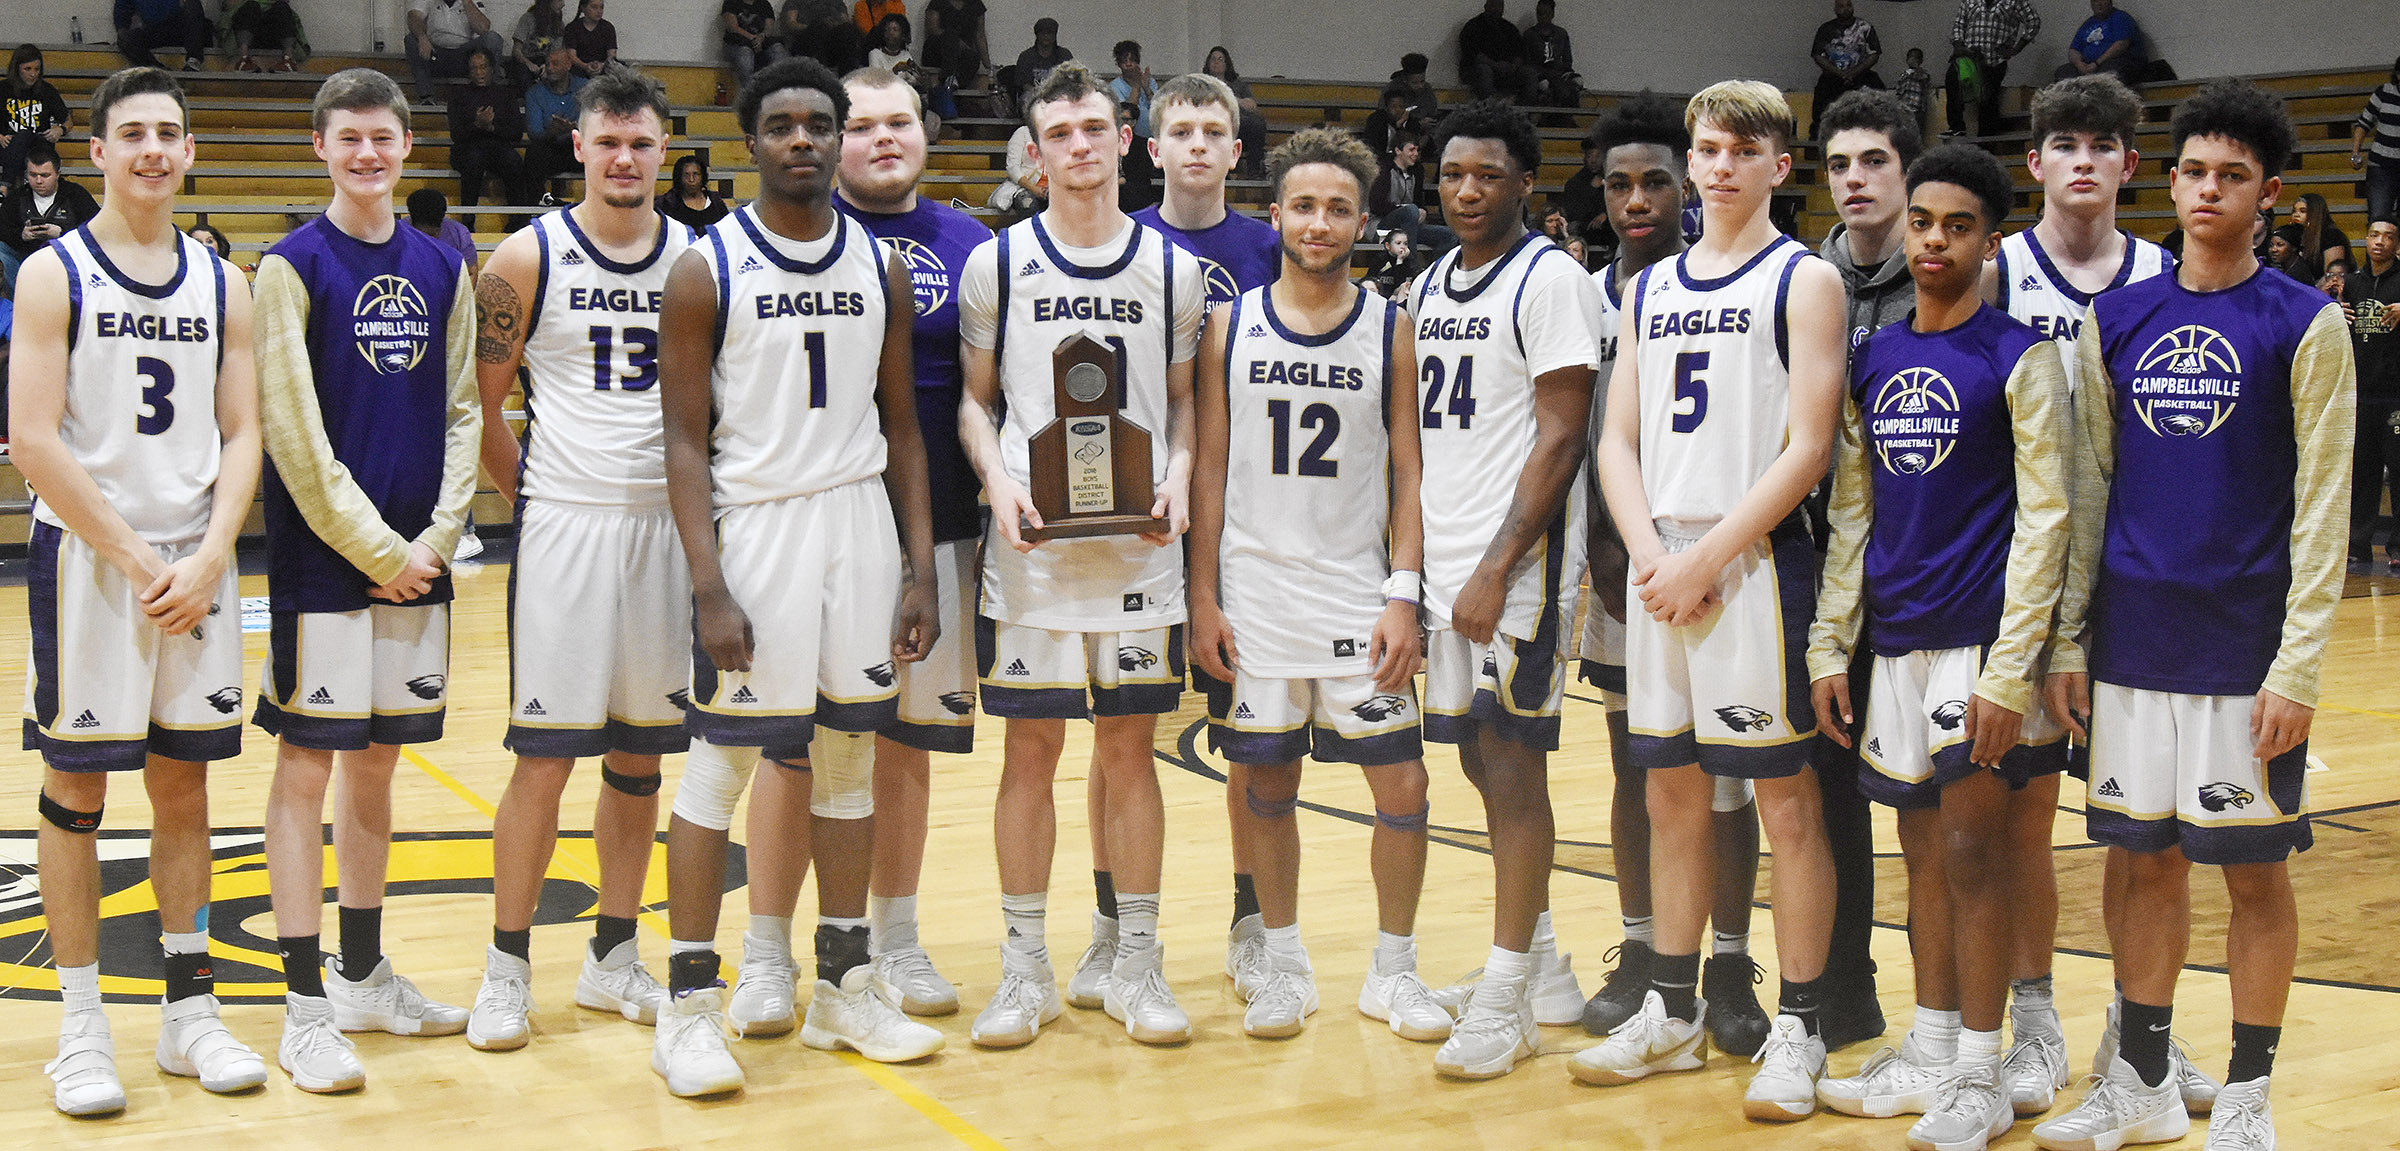 Campbellsville High School boys' basketball team is 20th District tournament runners-up. From left are freshmen John Orberson and Tristin Faulkner, seniors Logan Cole, Chanson Atkinson, Toyse Cox and Connor Wilson, sophomore Noah Hughes, senior Ethan Lay, junior Taj Sanders, sophomore Malachi Corley, freshmen Arren Hash and Kameron Smith, junior Davon Cecil and sophomores Mark Rigsby and Mikael Vaught.